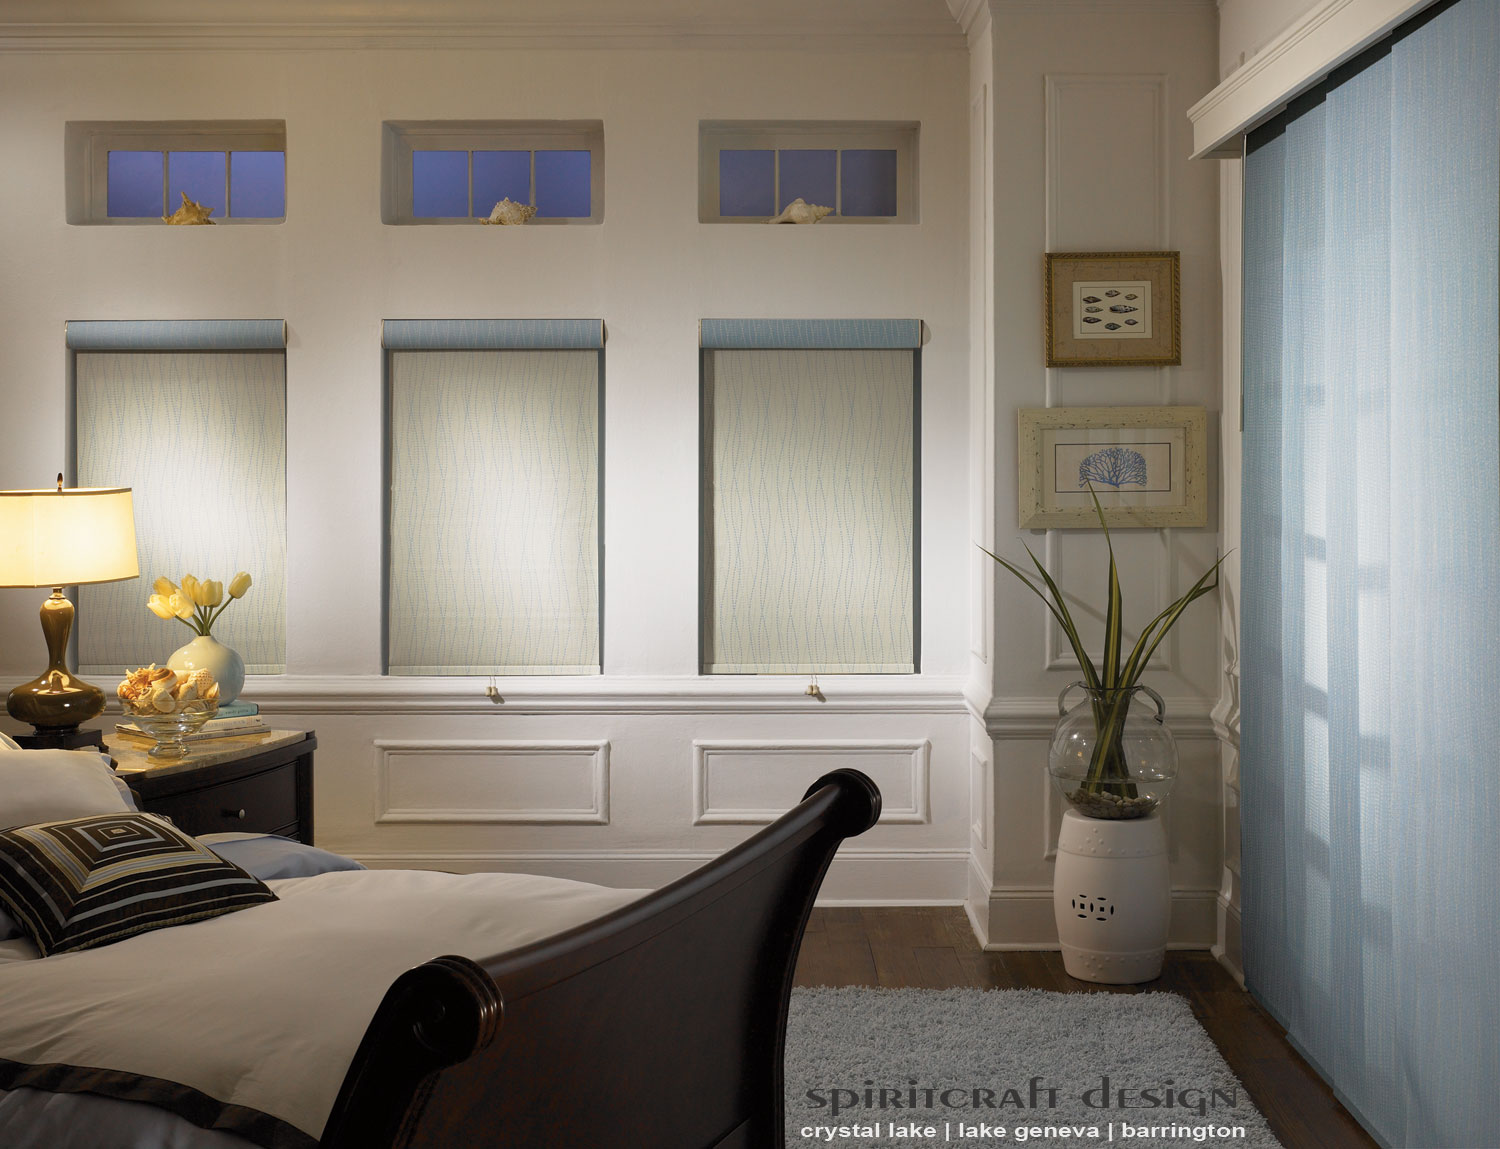 Outlook Window Fashions - Get quot; - Shades Blinds - 1629 3